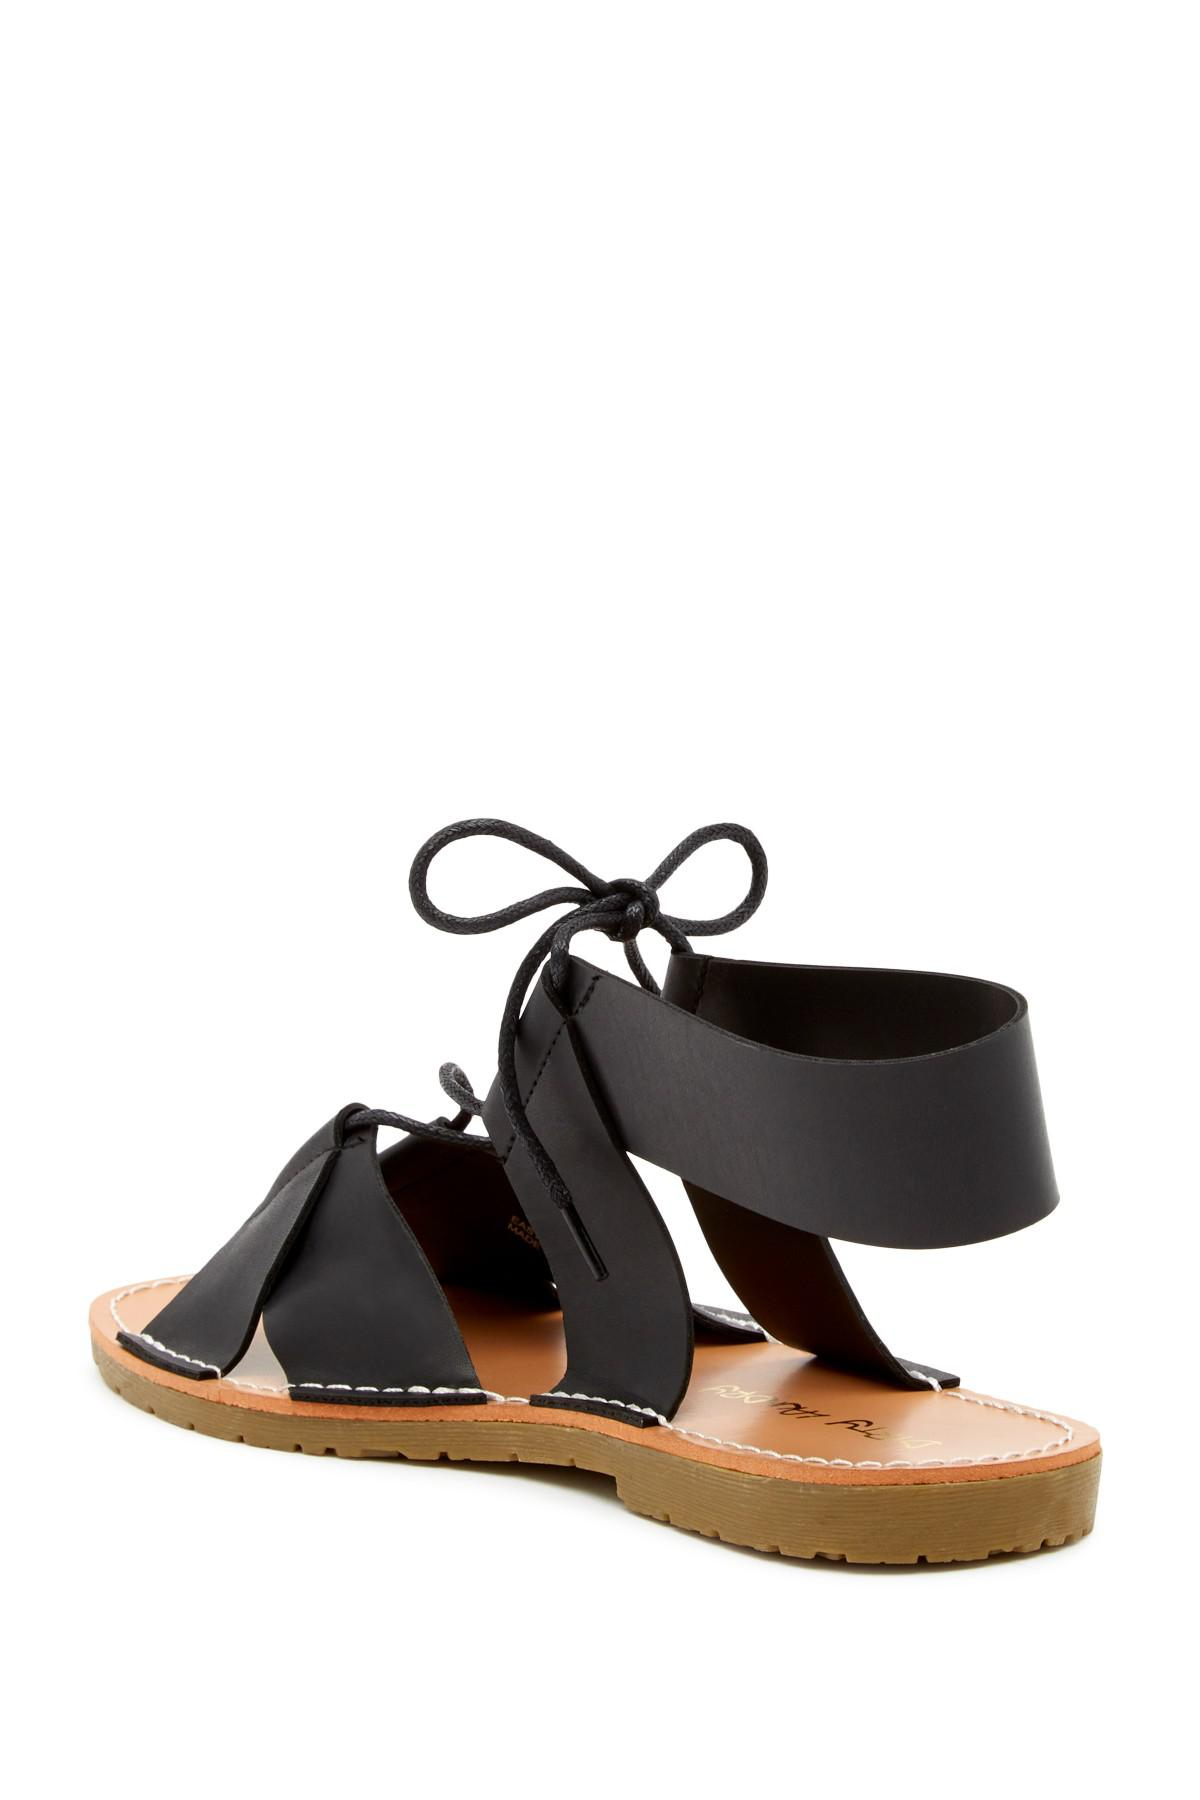 Dirty Laundry Emphasis Strappy Sandal F0nZk9wH7